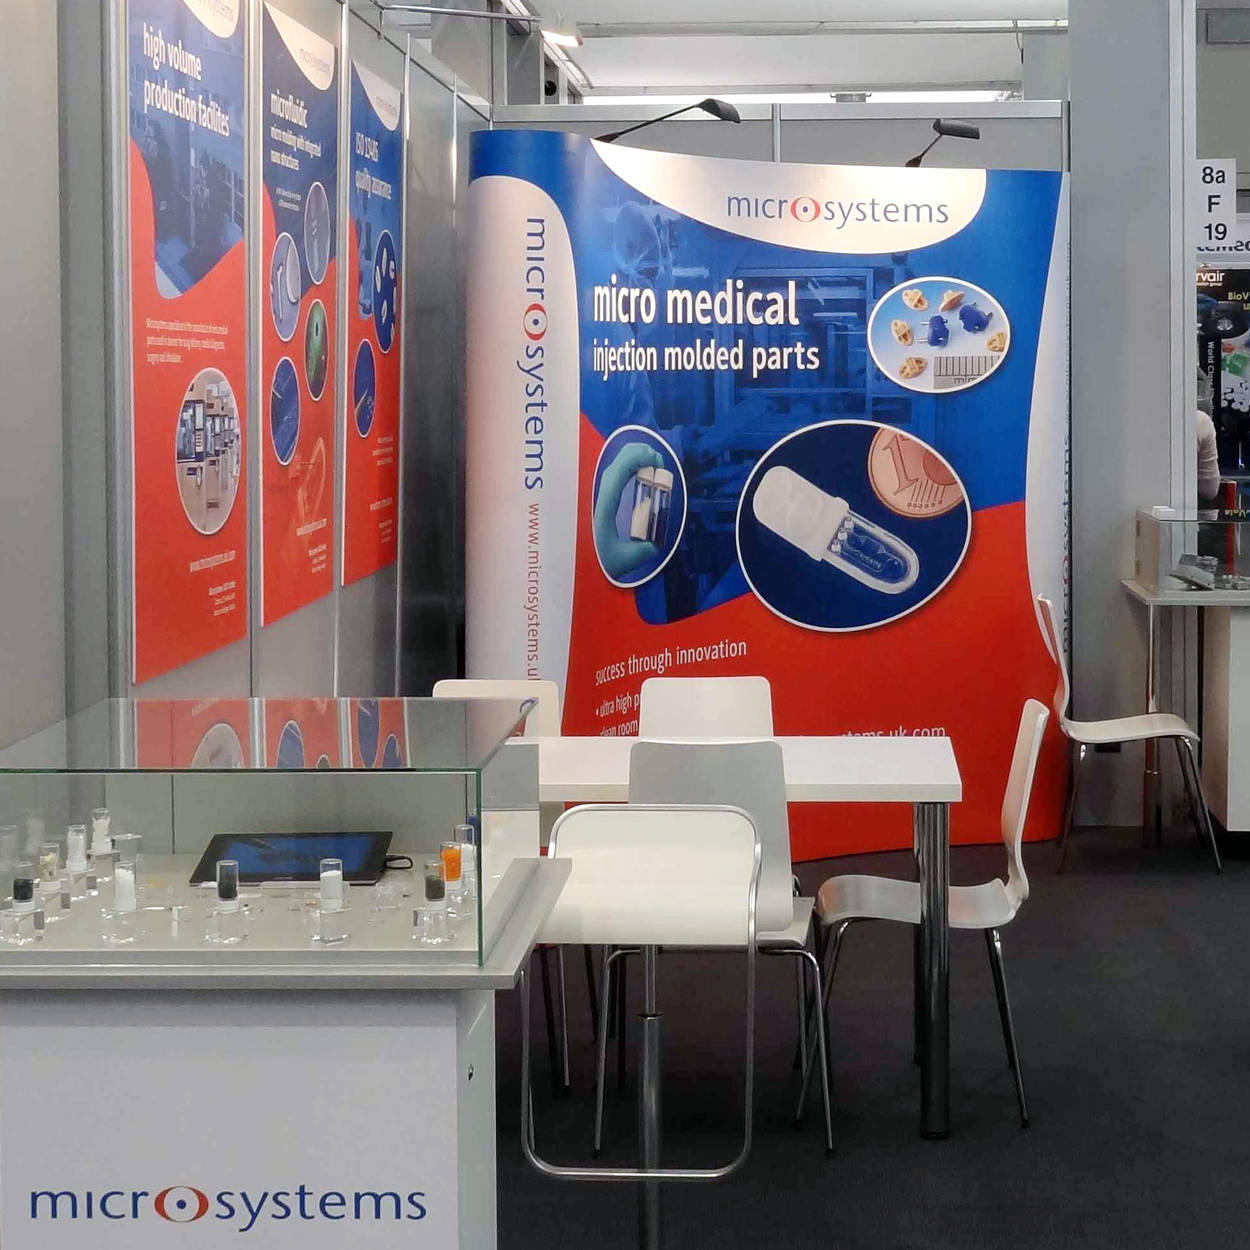 pop-up-stand-exhibition-print-design-microsystems-compamed-orangebox